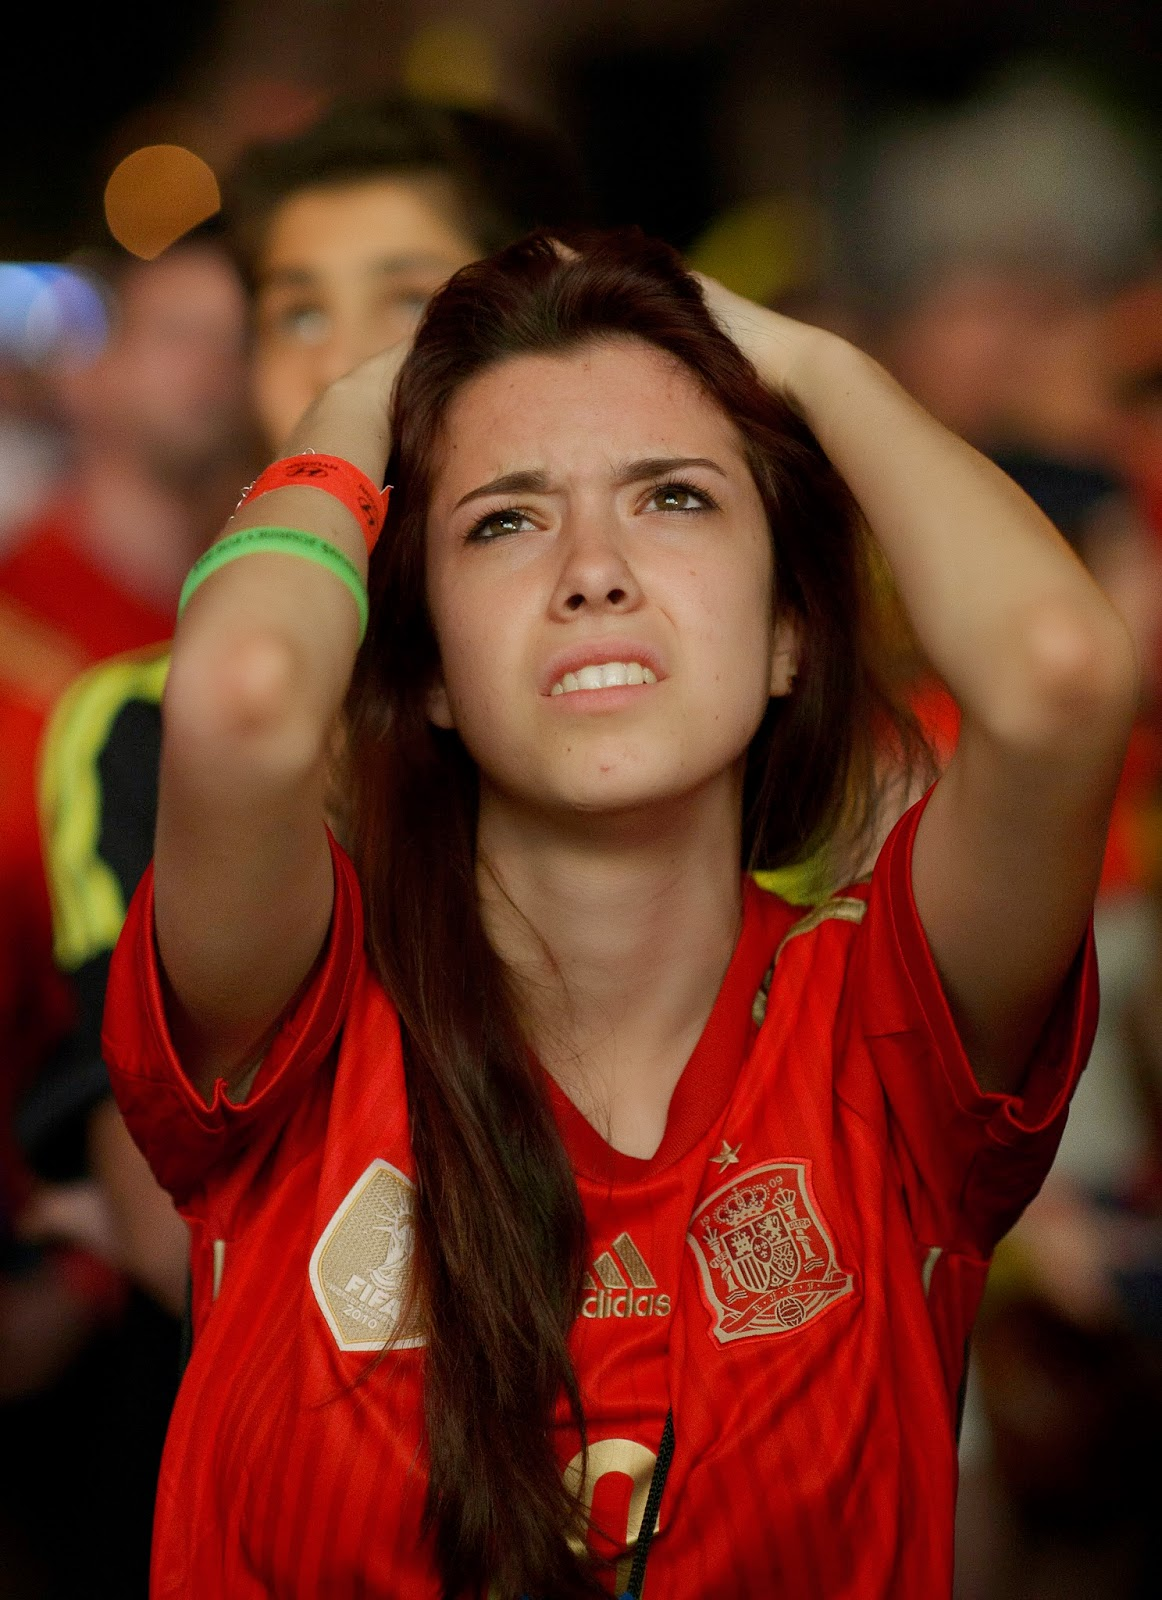 Images Archival Store: FIFA World Cup 2014: Spain Vs